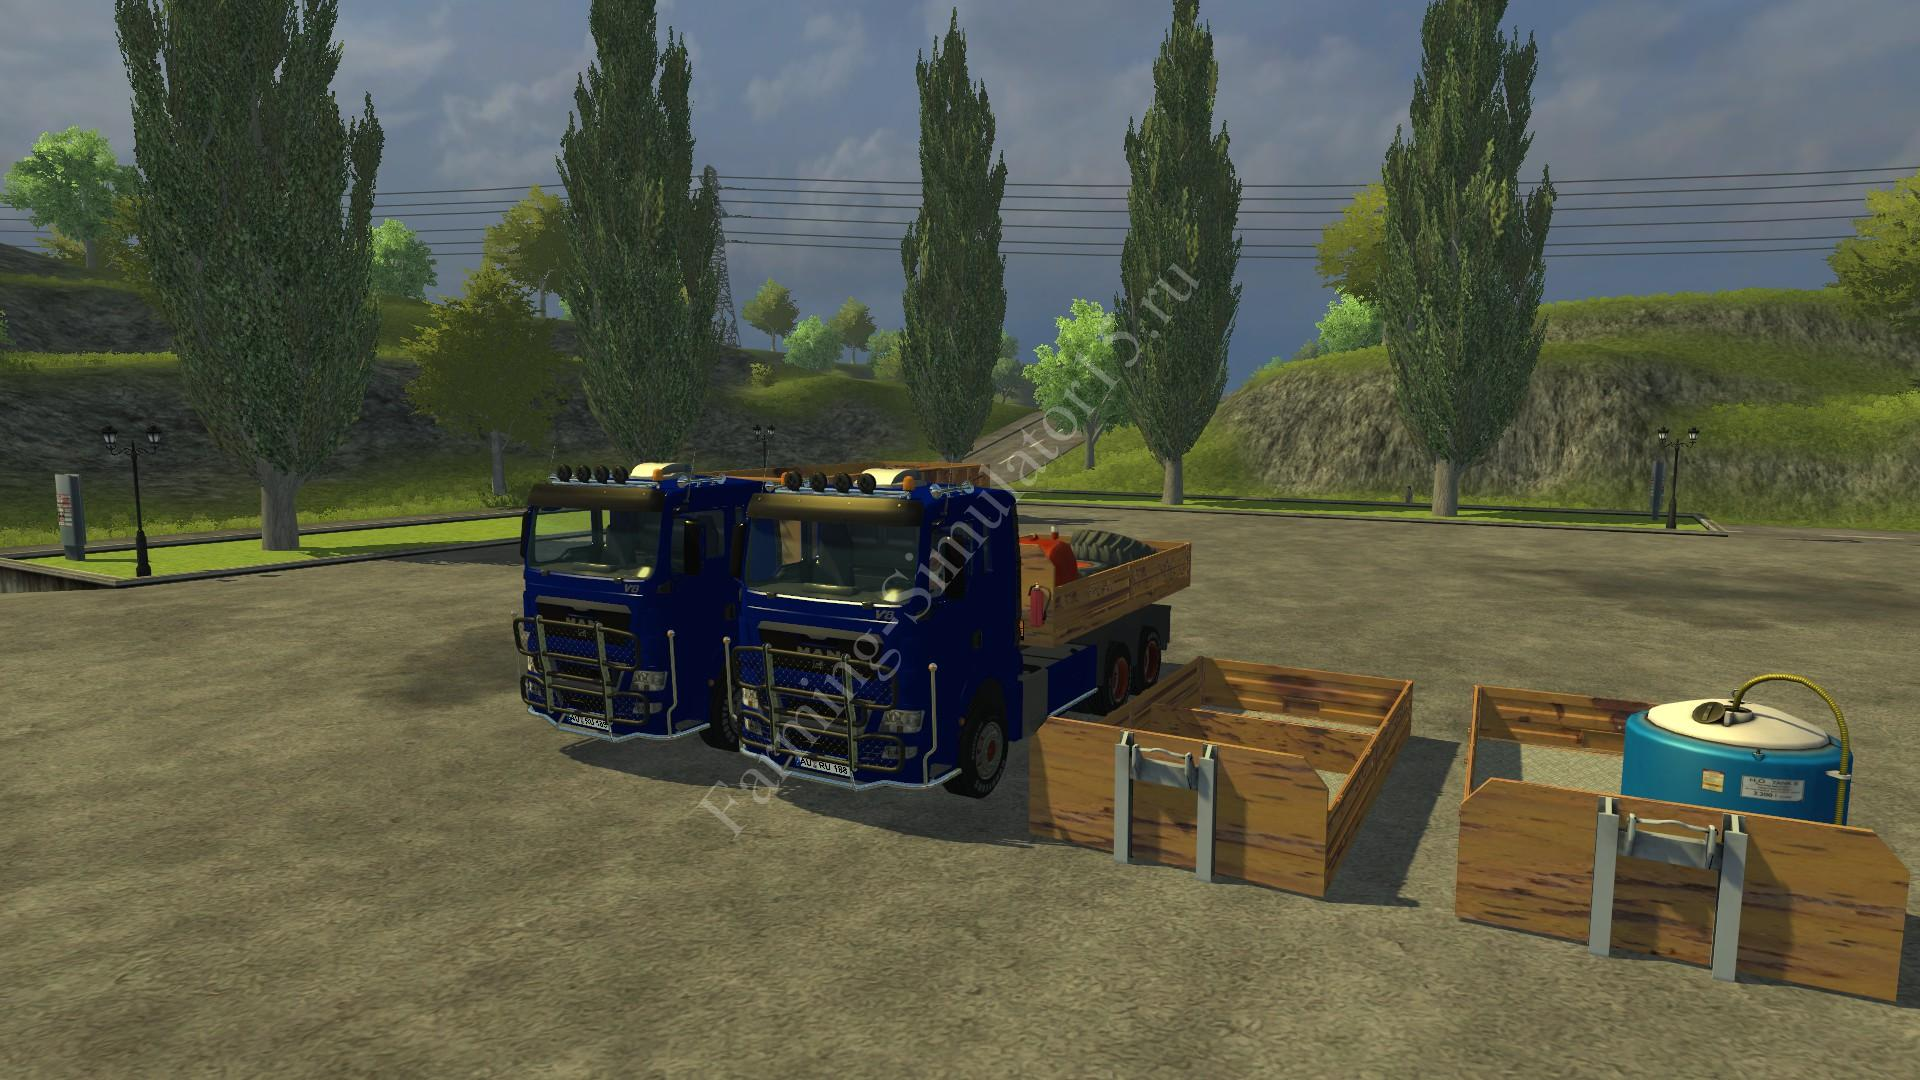 Мод грузовика MAN TGX HKL with container v 5.0 Rost Farming Simulator 2013, Farming Simulator 13